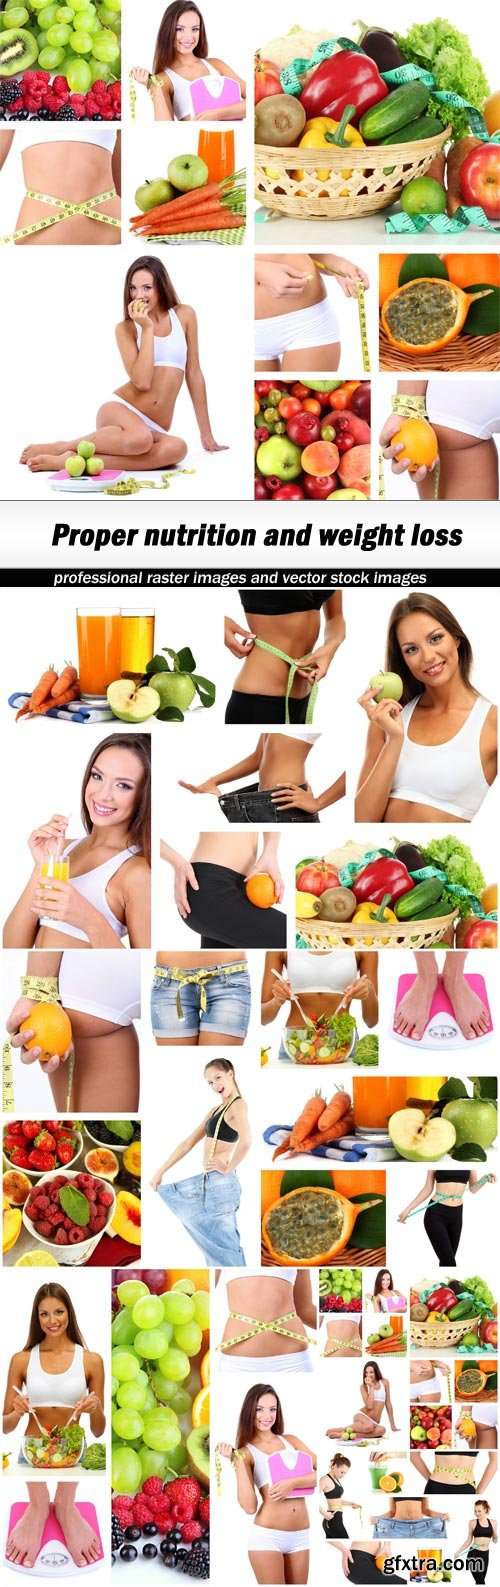 Proper nutrition and weight loss - 5 UHQ JPEG